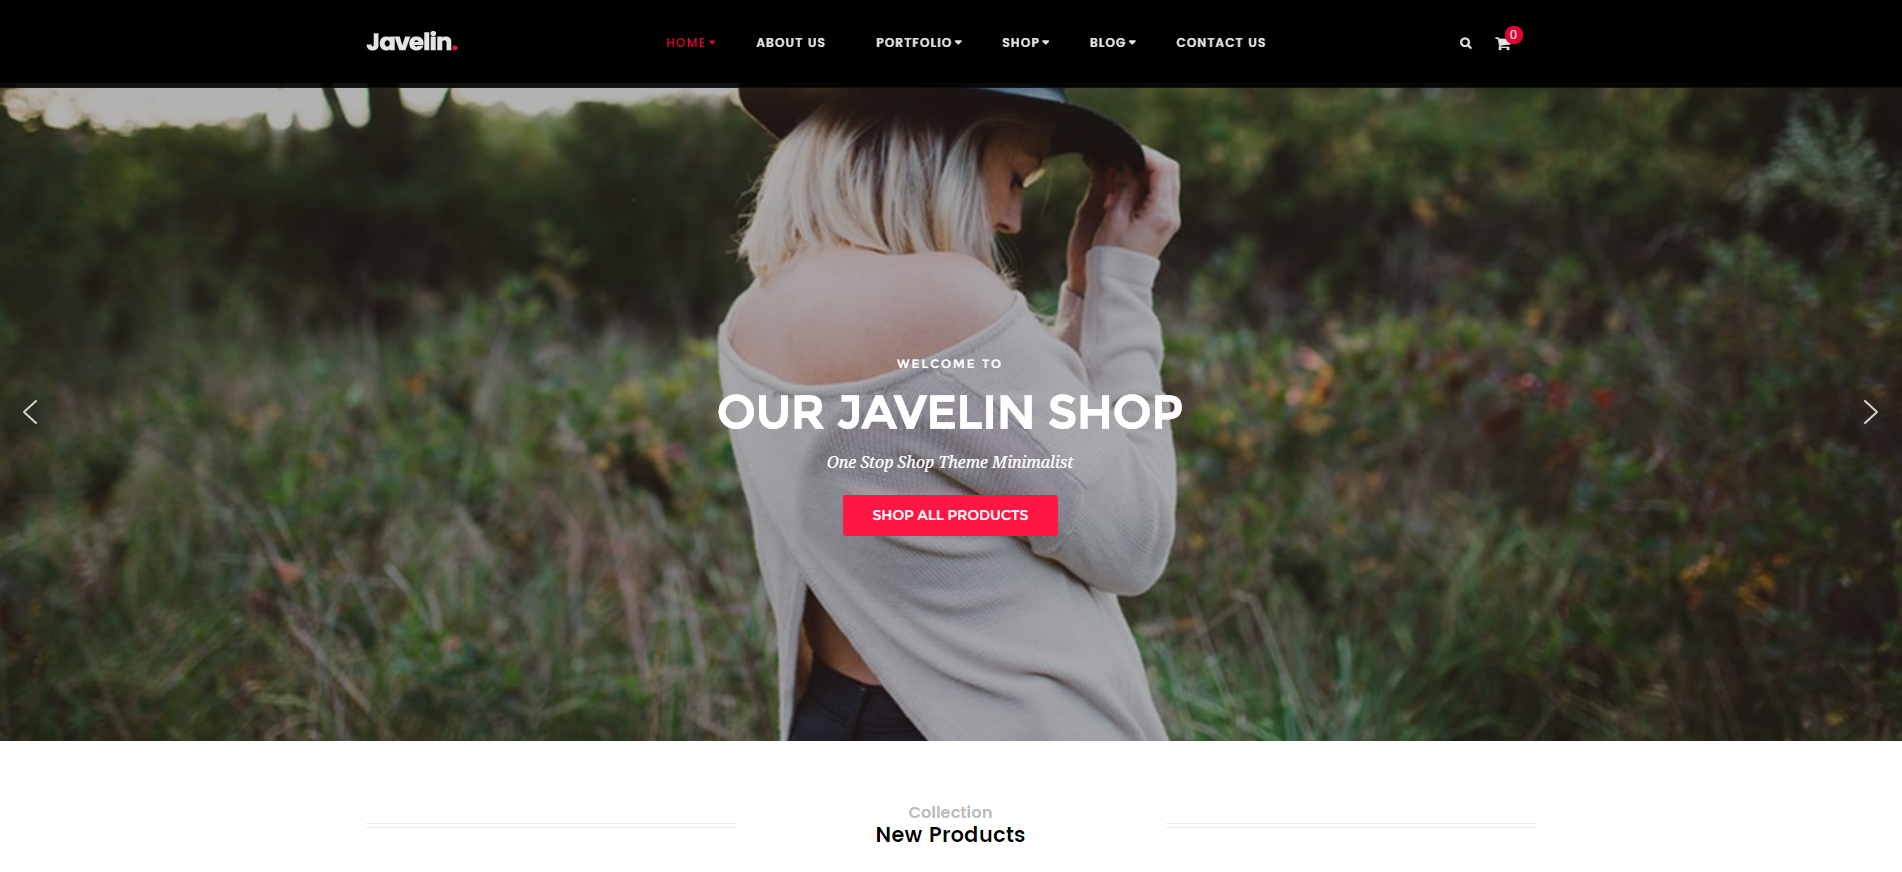 meilleur theme wordpress javelin